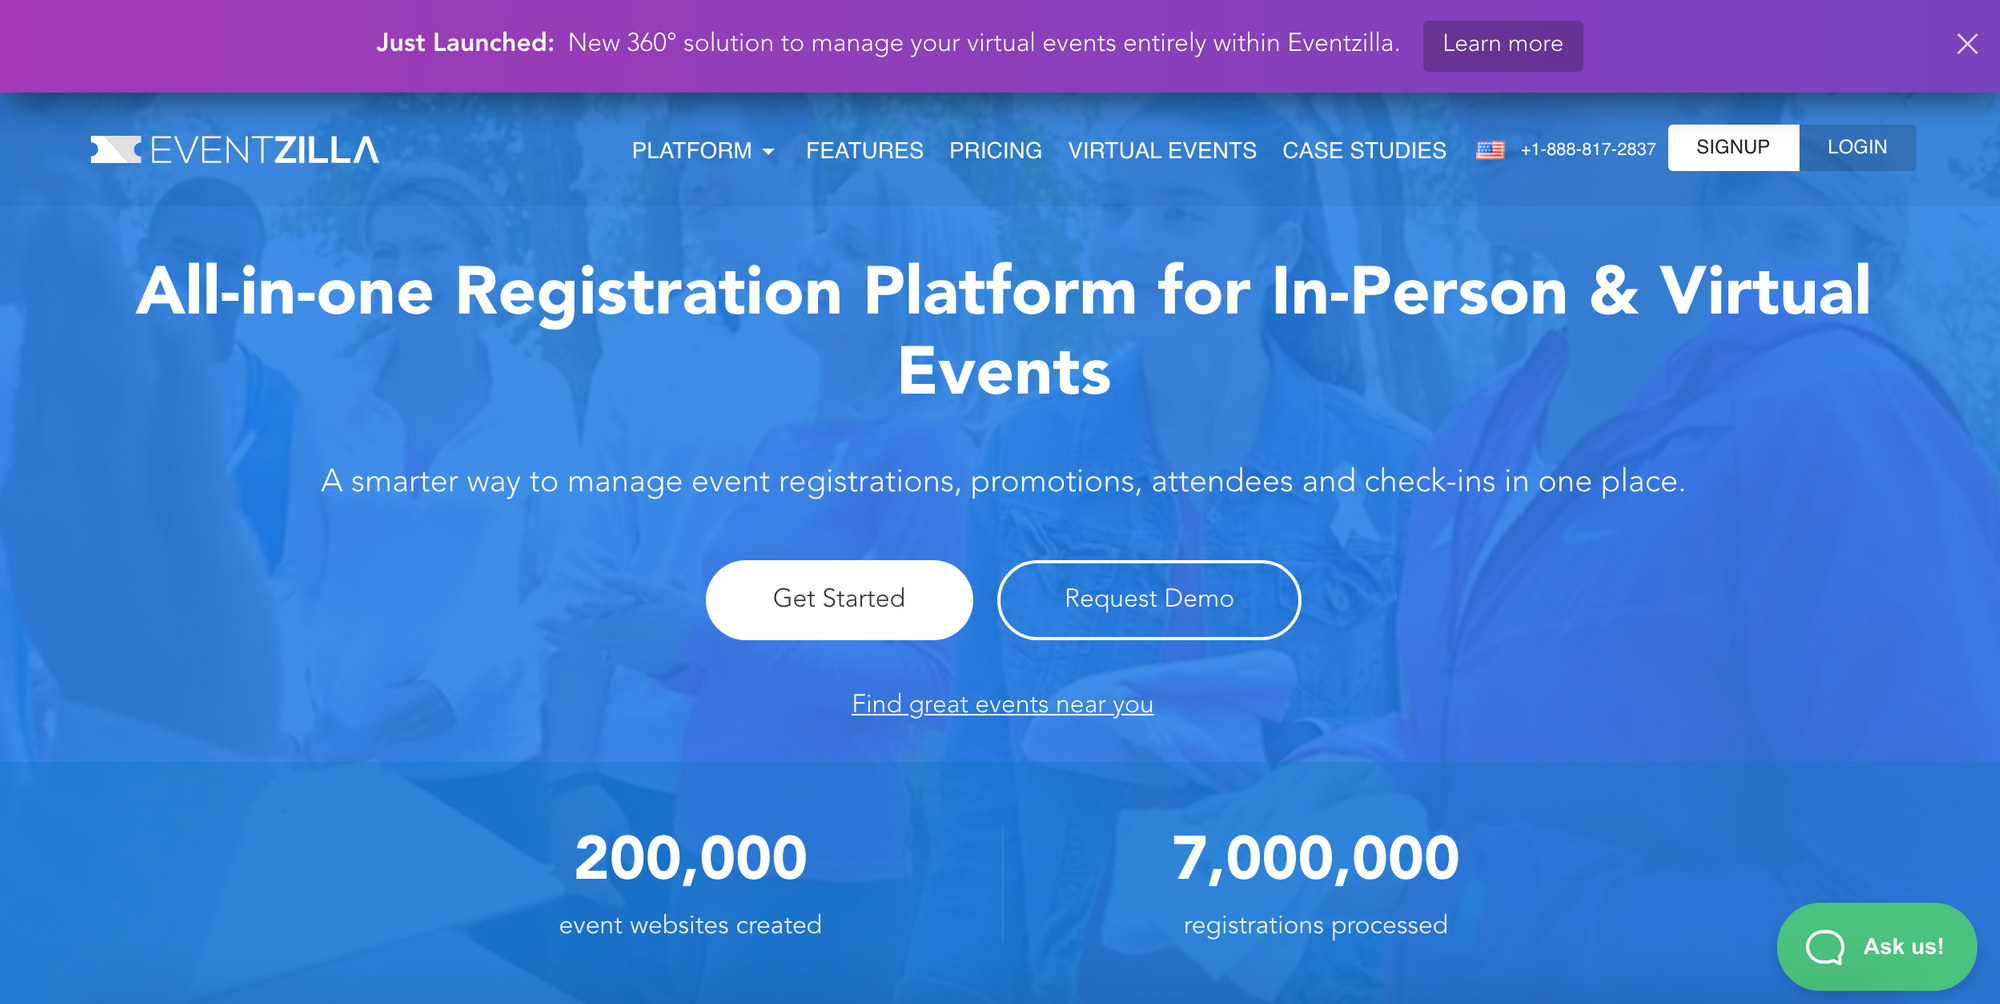 EventZilla Event Management Platform - Top Eventbrite Alternative